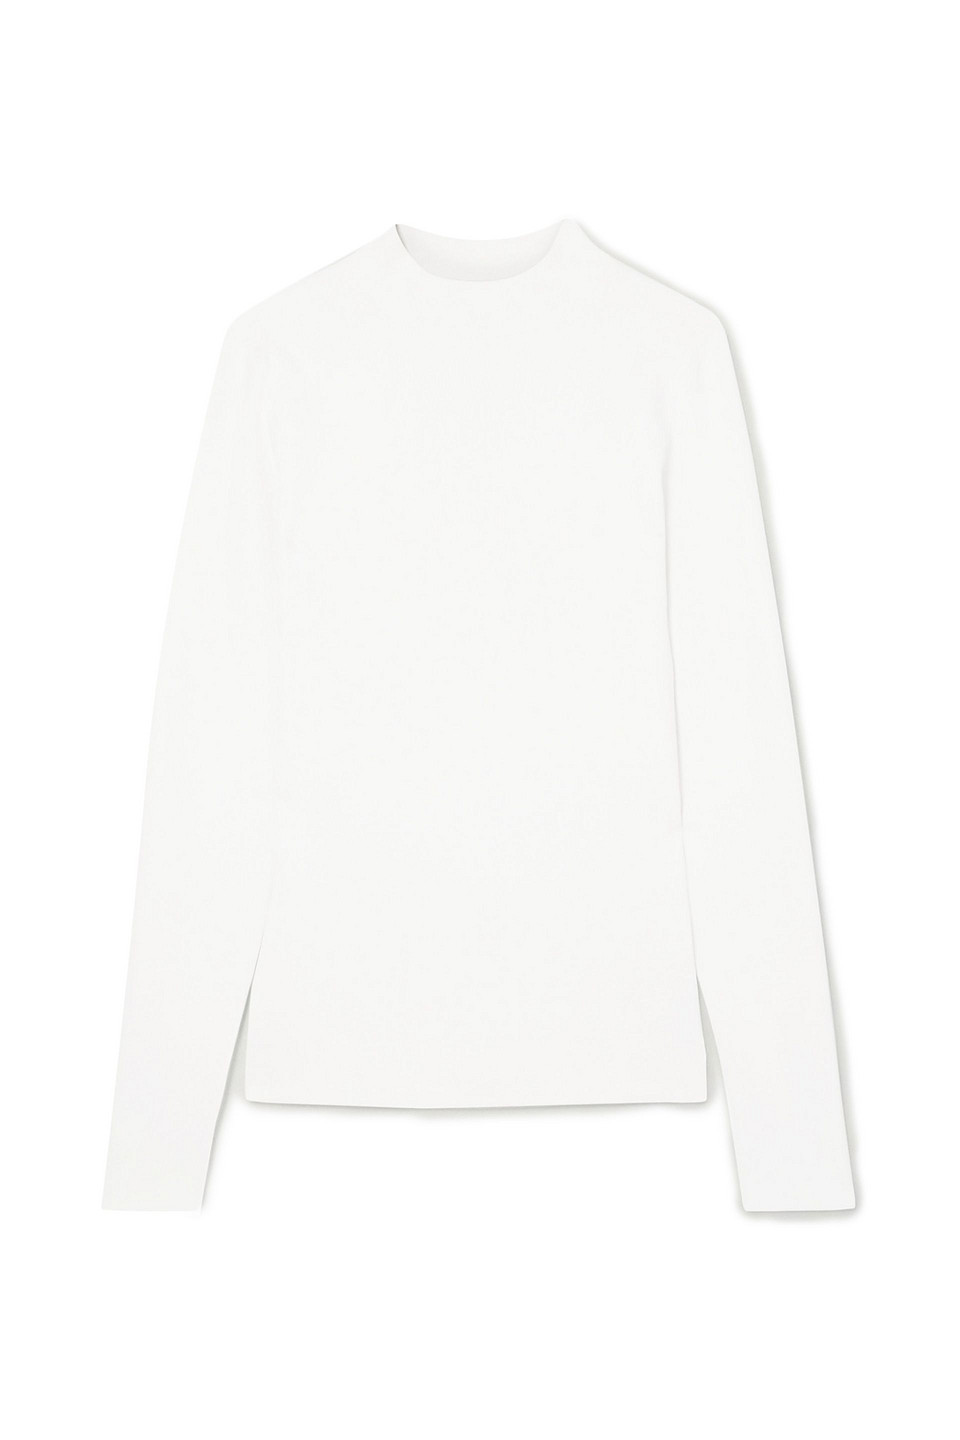 The Row   The Row Woman Stretch-knit Top White   Clouty